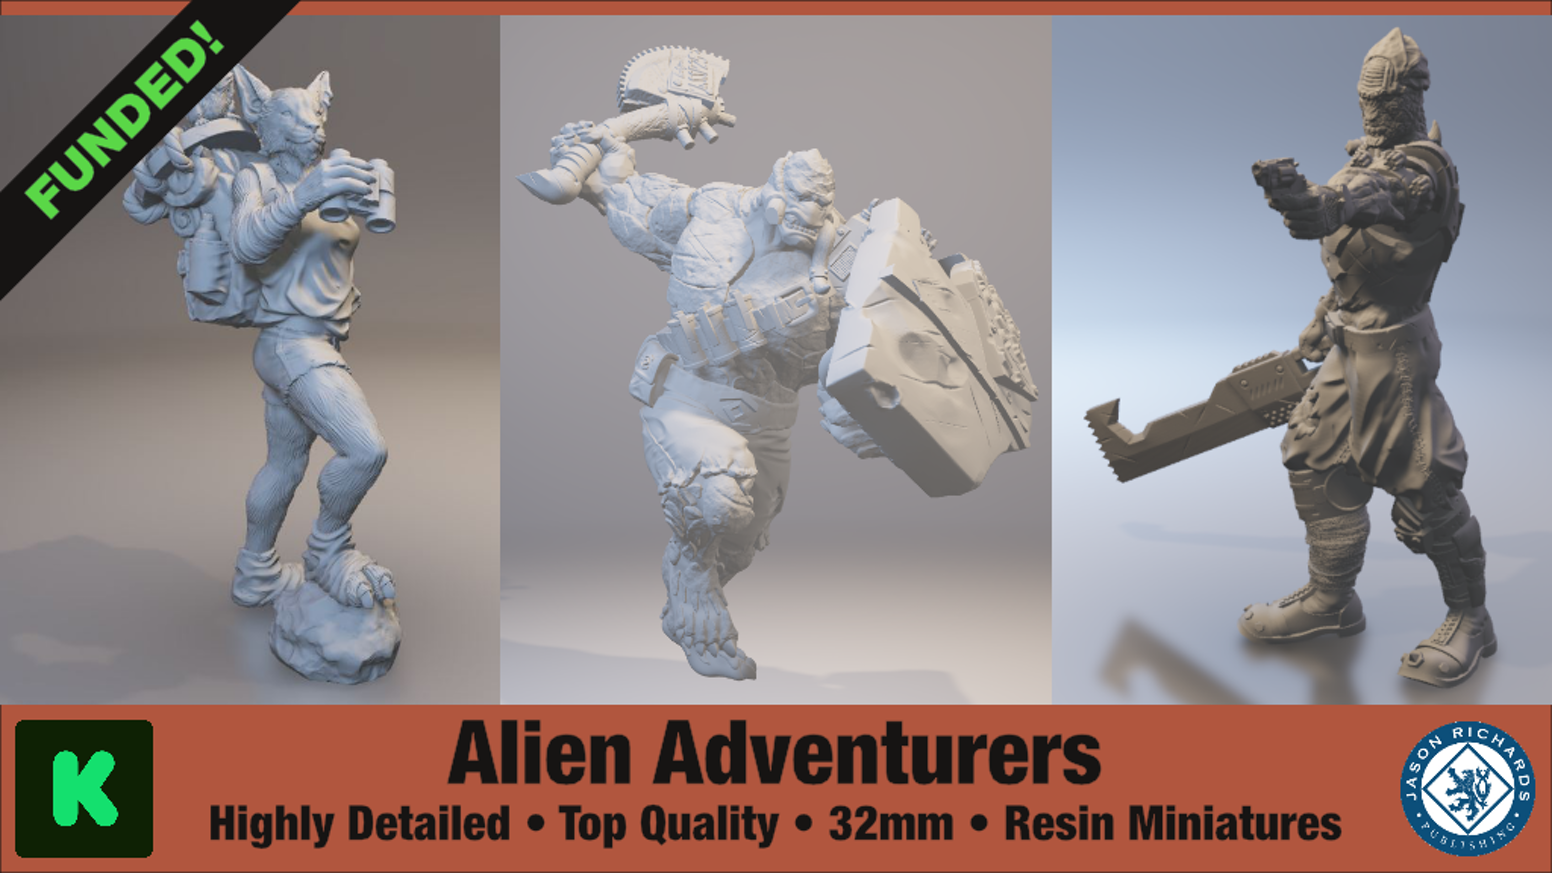 Alien Adventurers - 32mm resin miniatures by Jason Richards